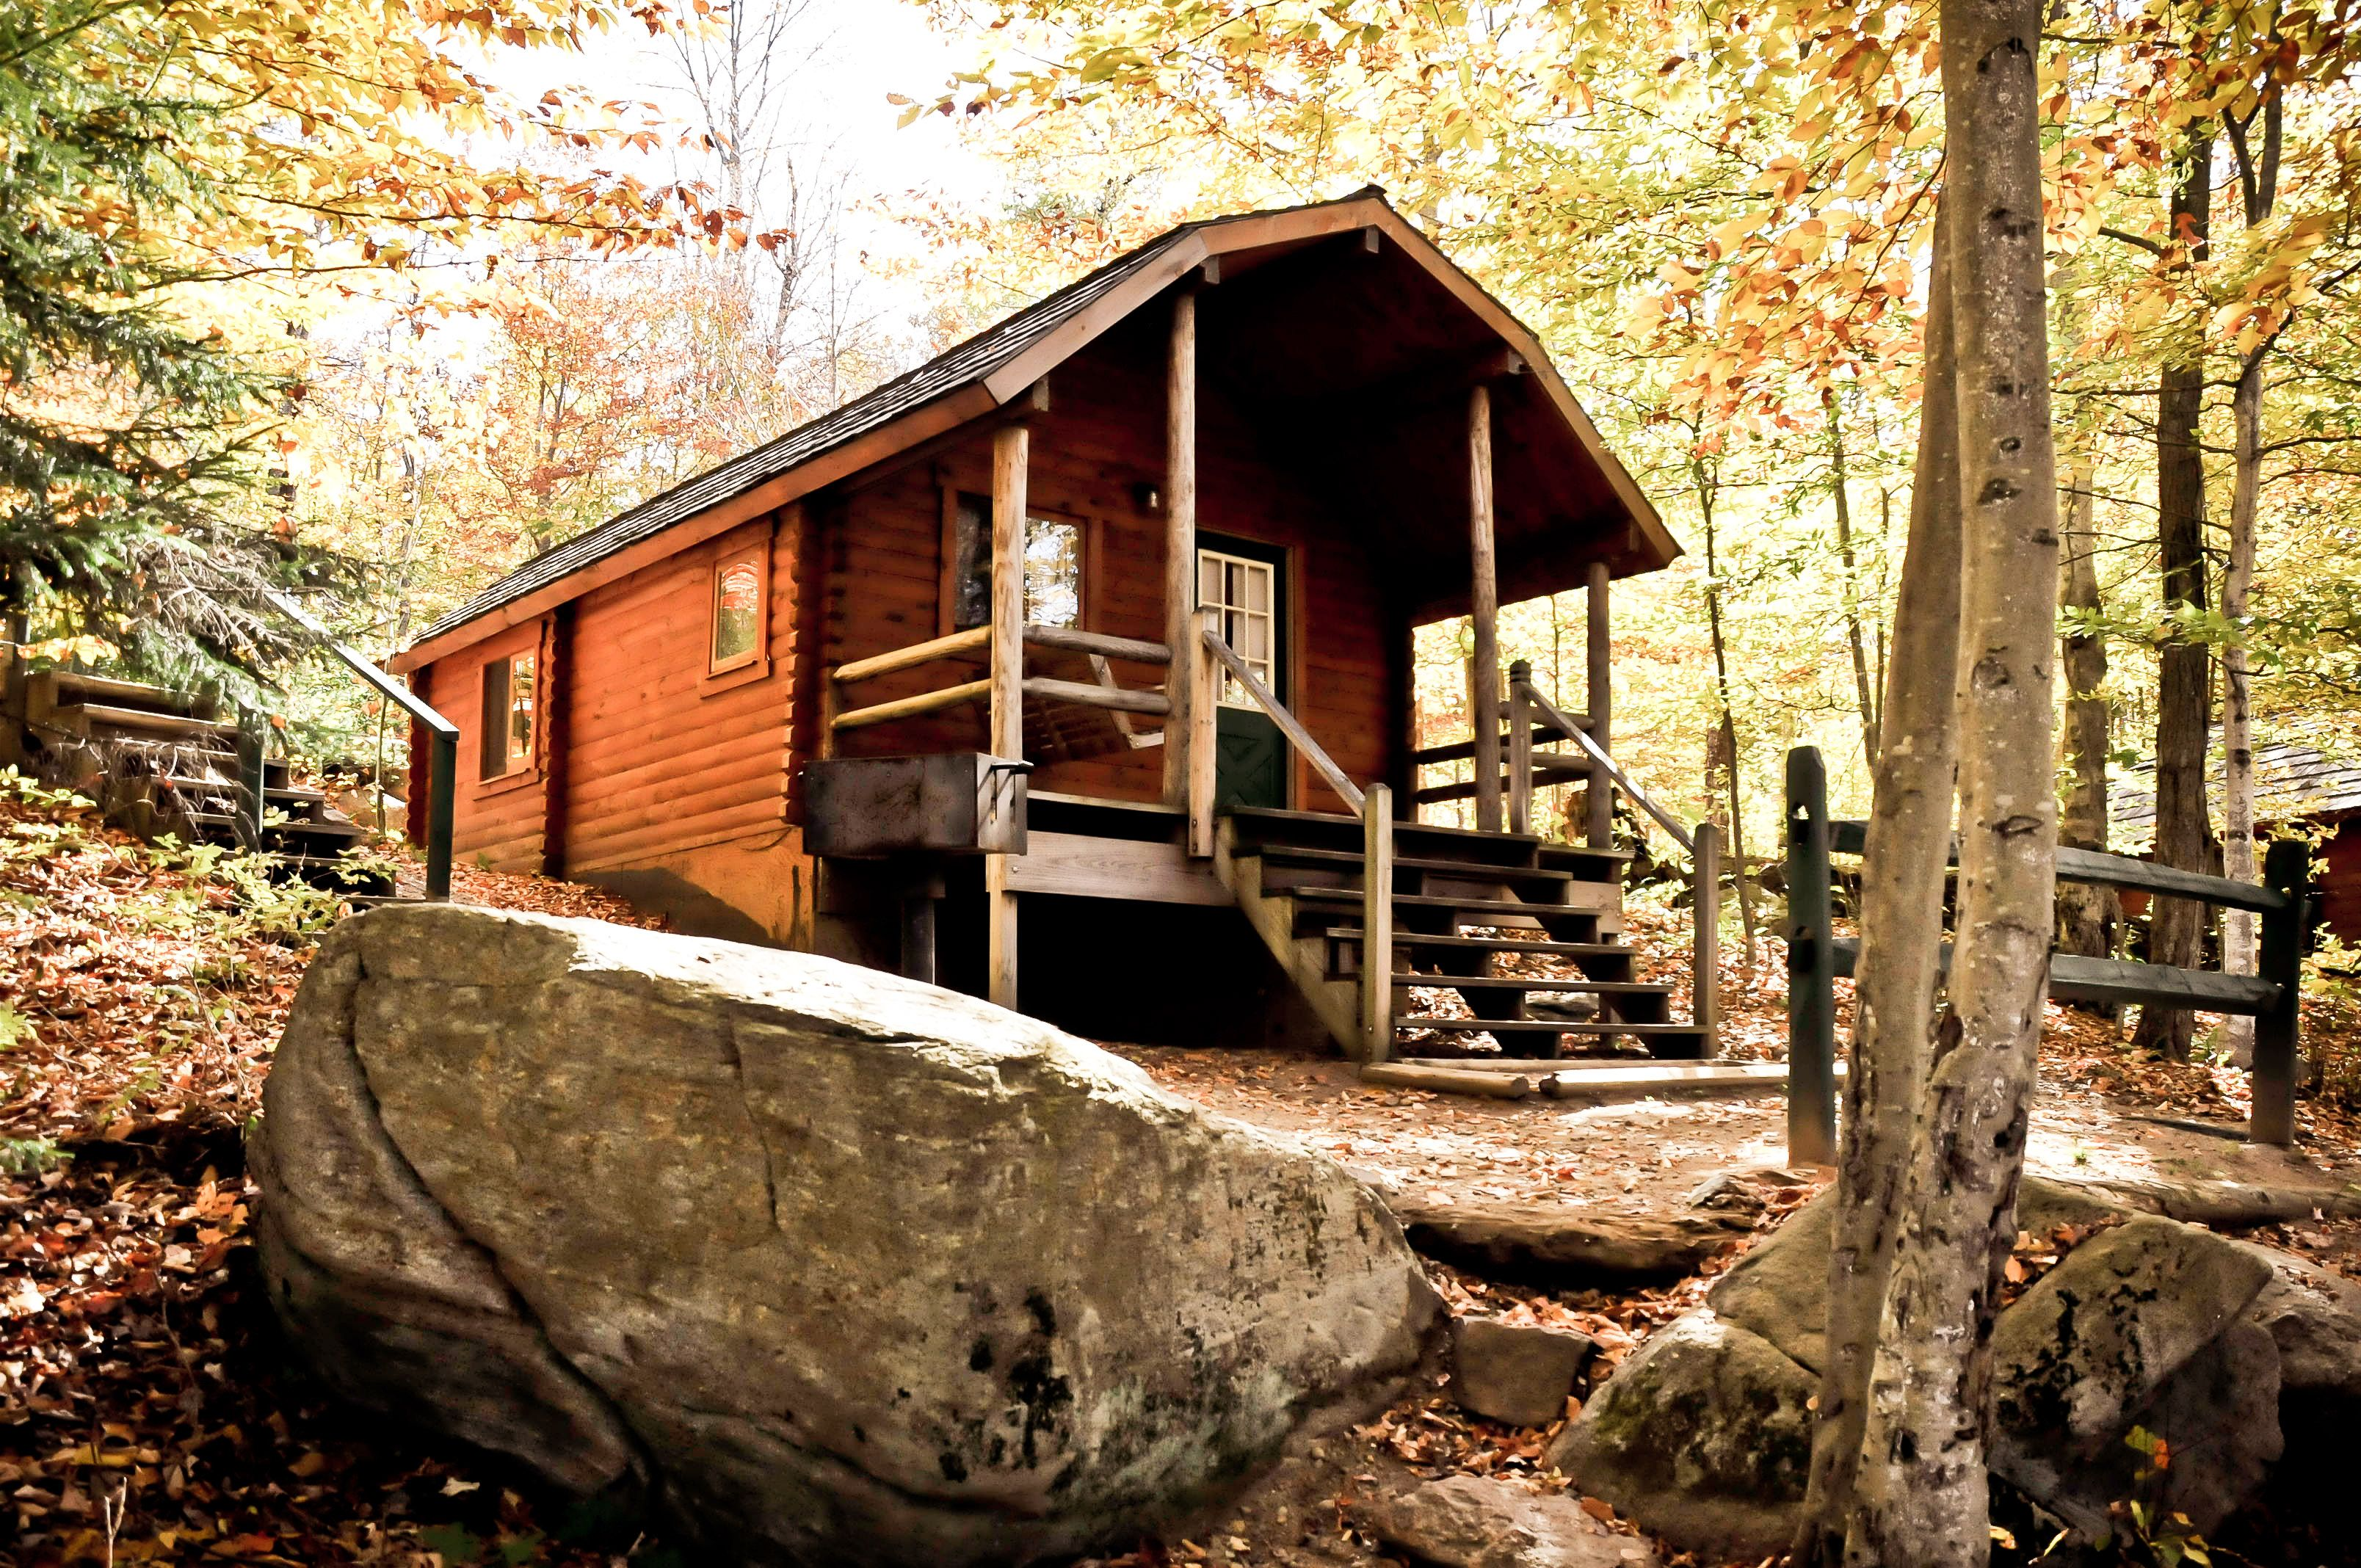 Bring Your Family To The Old Forge Camping Resort And Stay In One Of Our Cottages Equip With A Kitchenette Bathro Camping Resort Old Forge Camping Old Forge